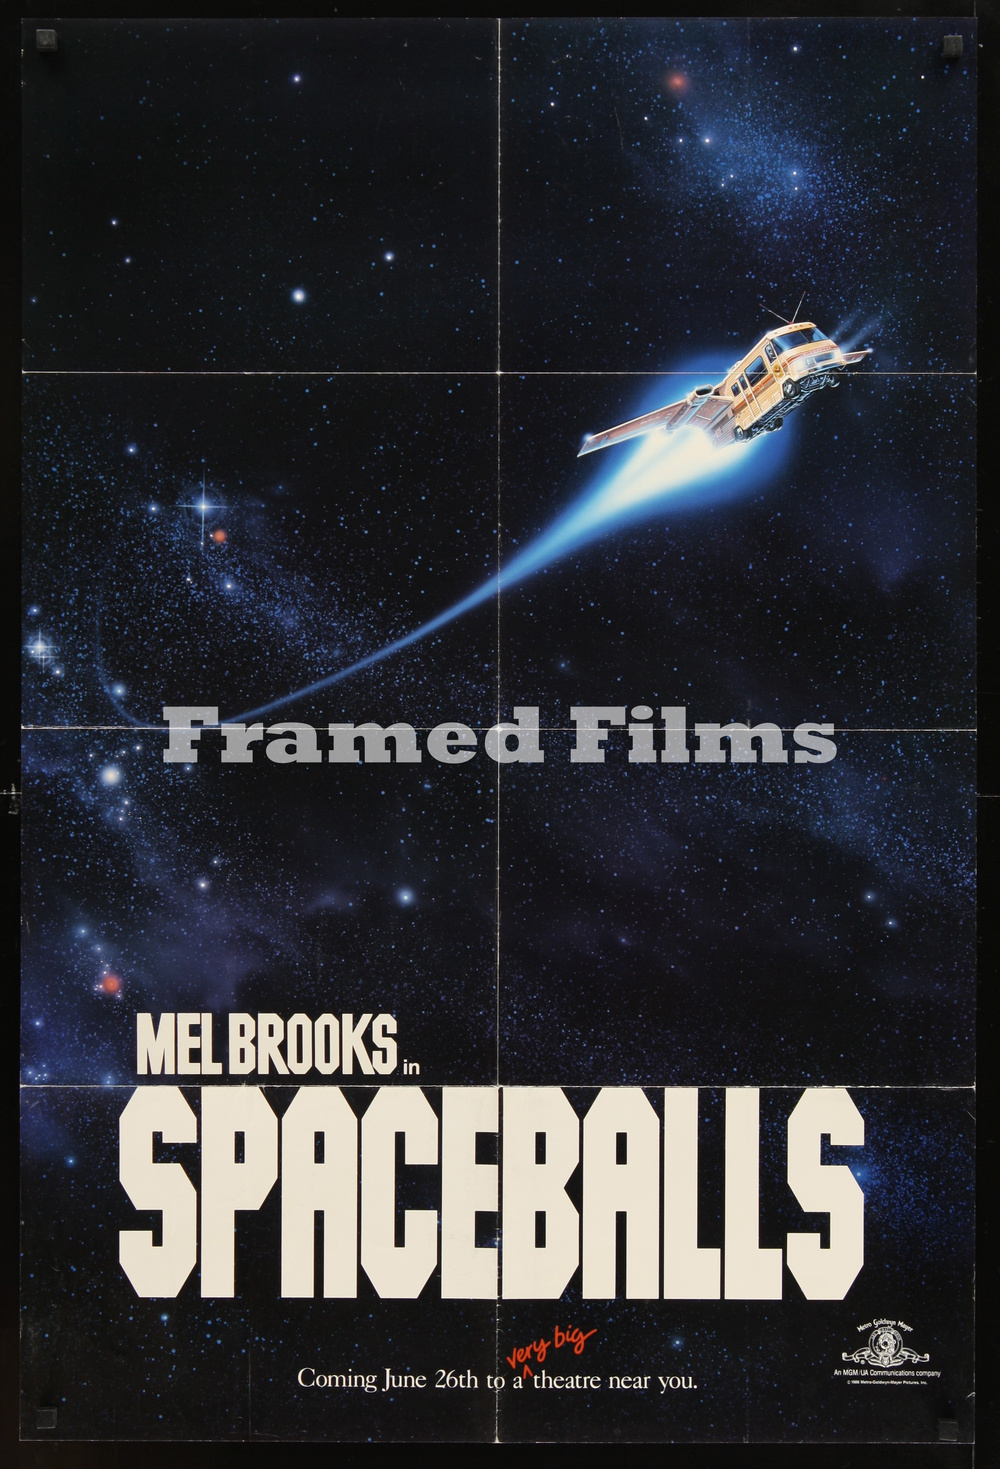 spaceballs_teaser_HP01179_L.jpg